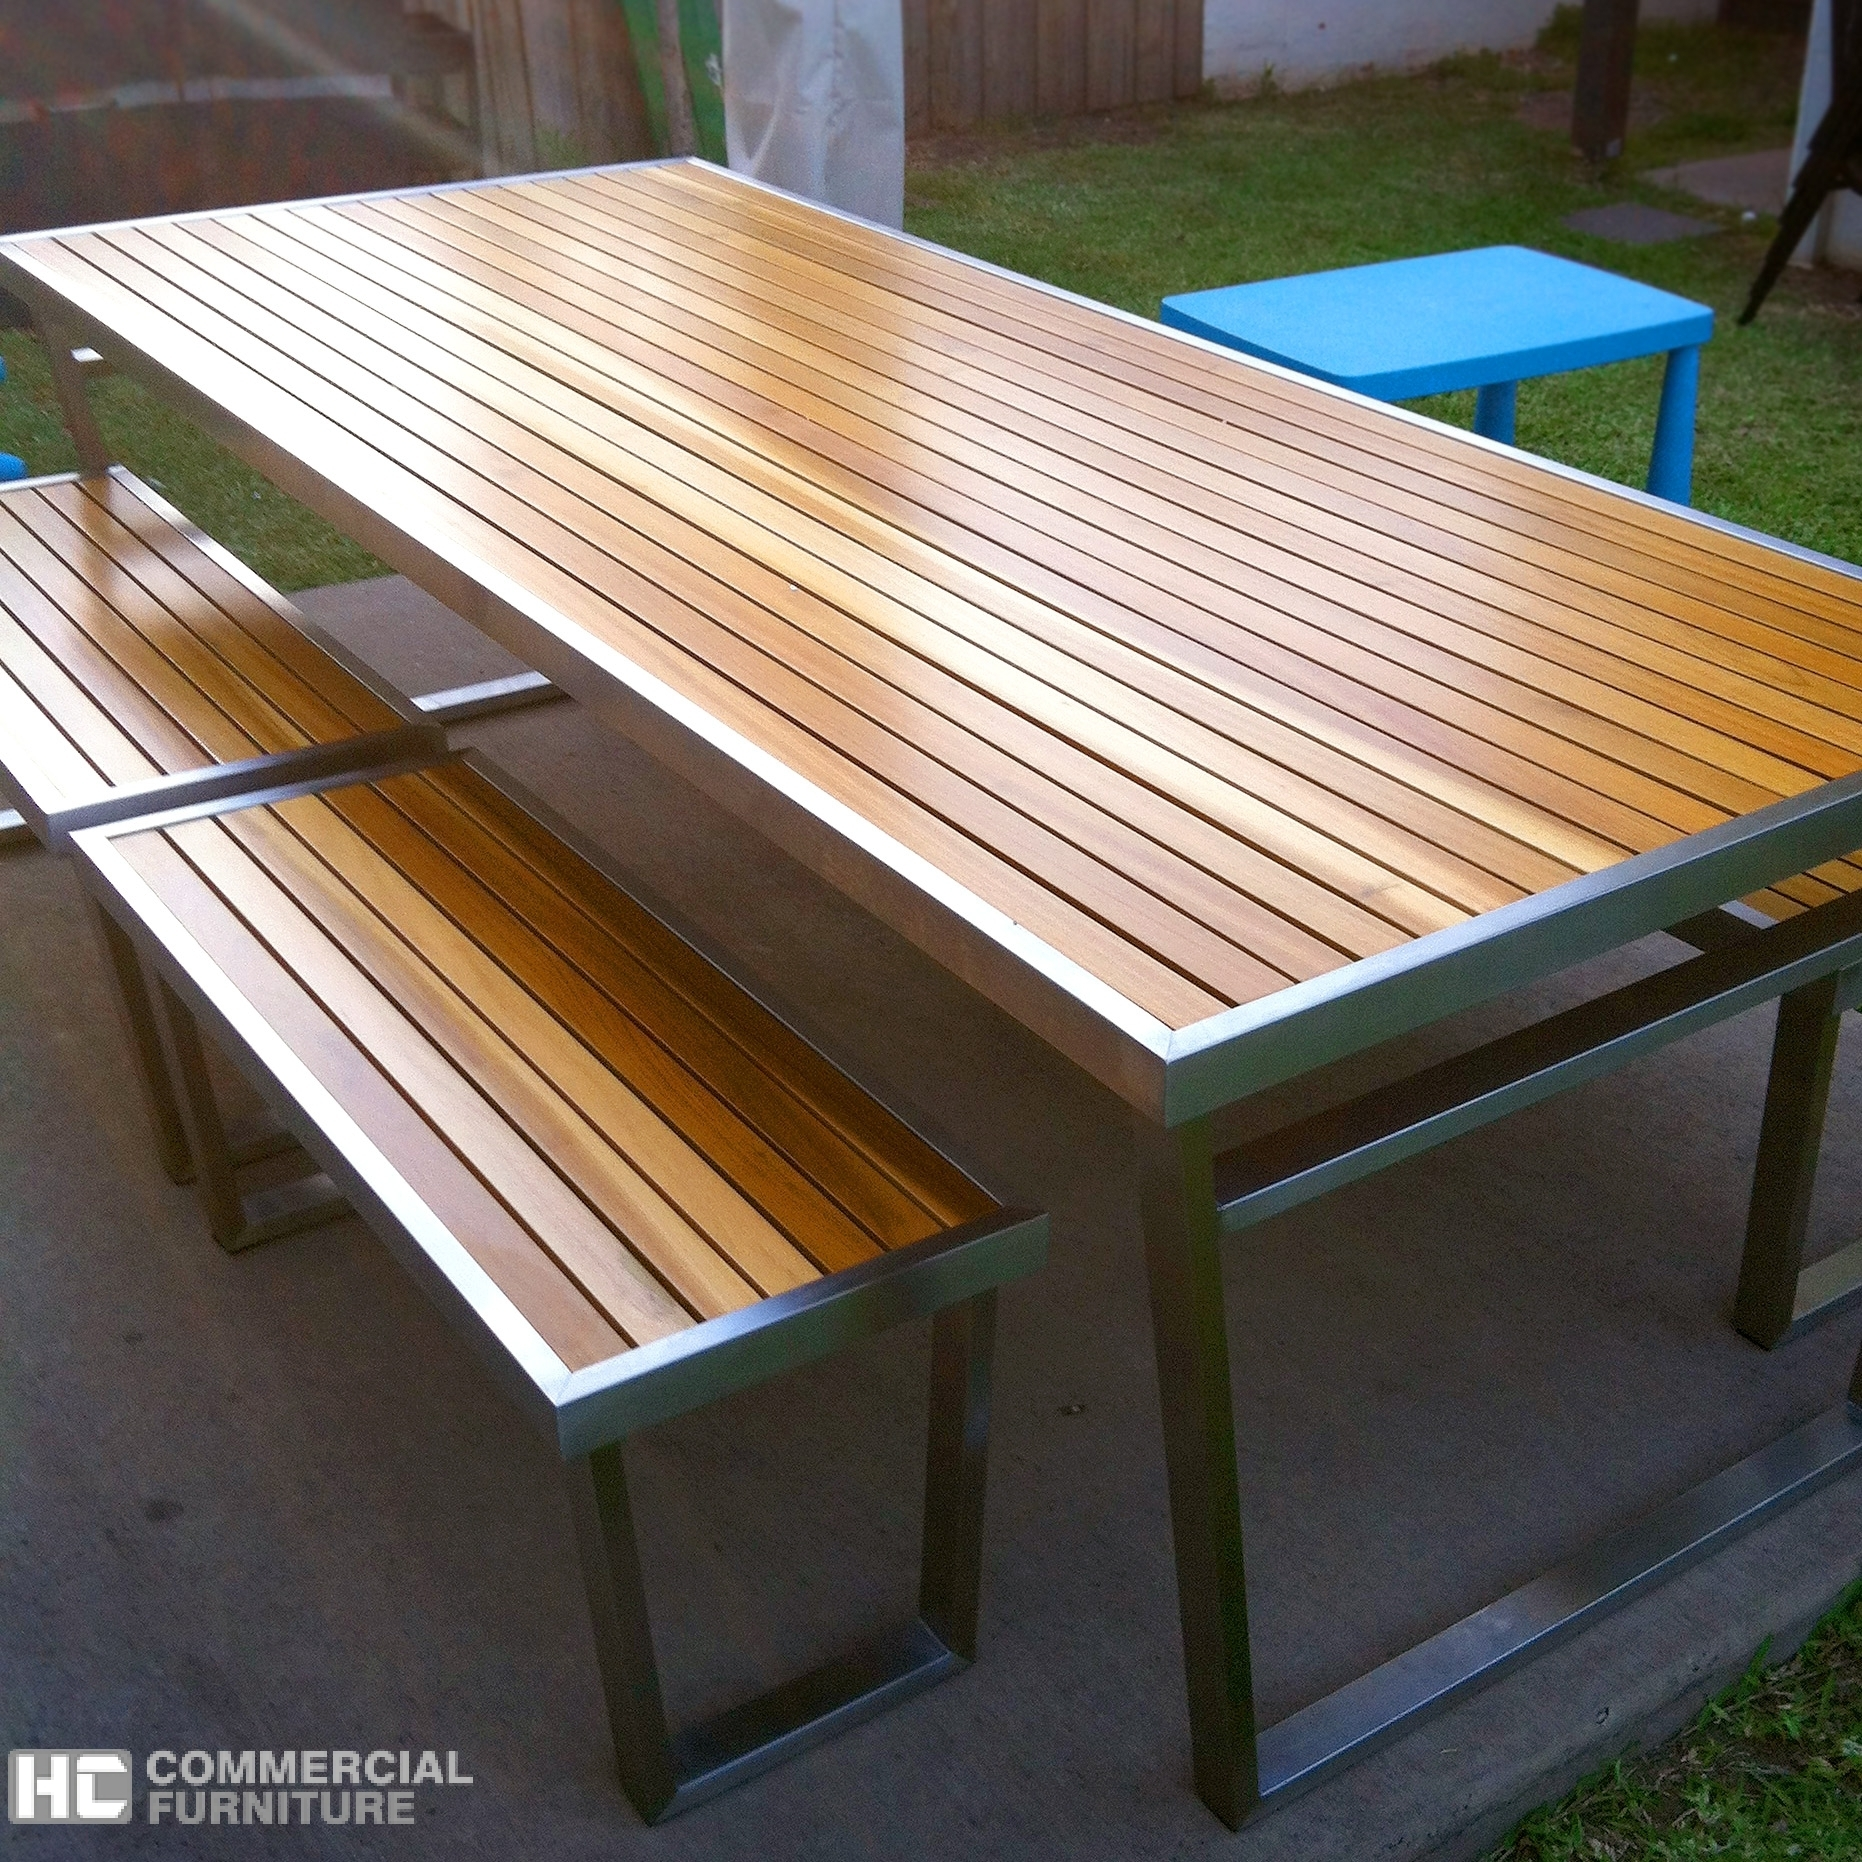 Image of: Teakwood Stainless Steel Table Set Hccf Commercial Furniture Throughout Outdoor Stainless Steel Furniture Great Outdoor Stainless Steel Furniture